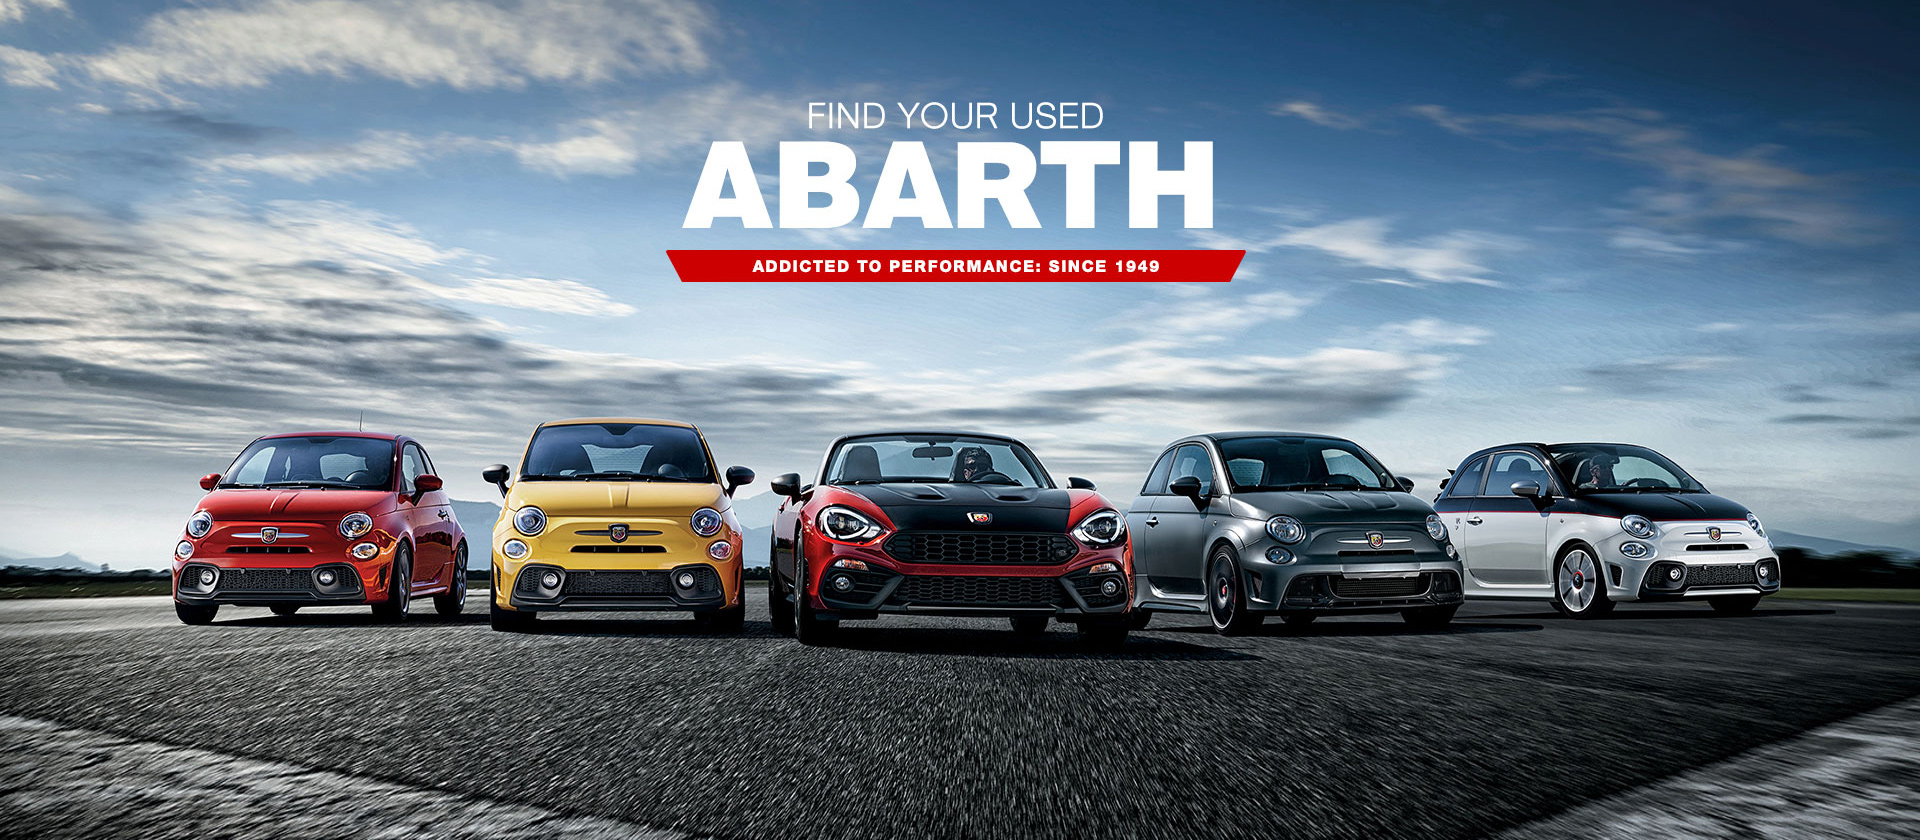 Find Your Used Abarth